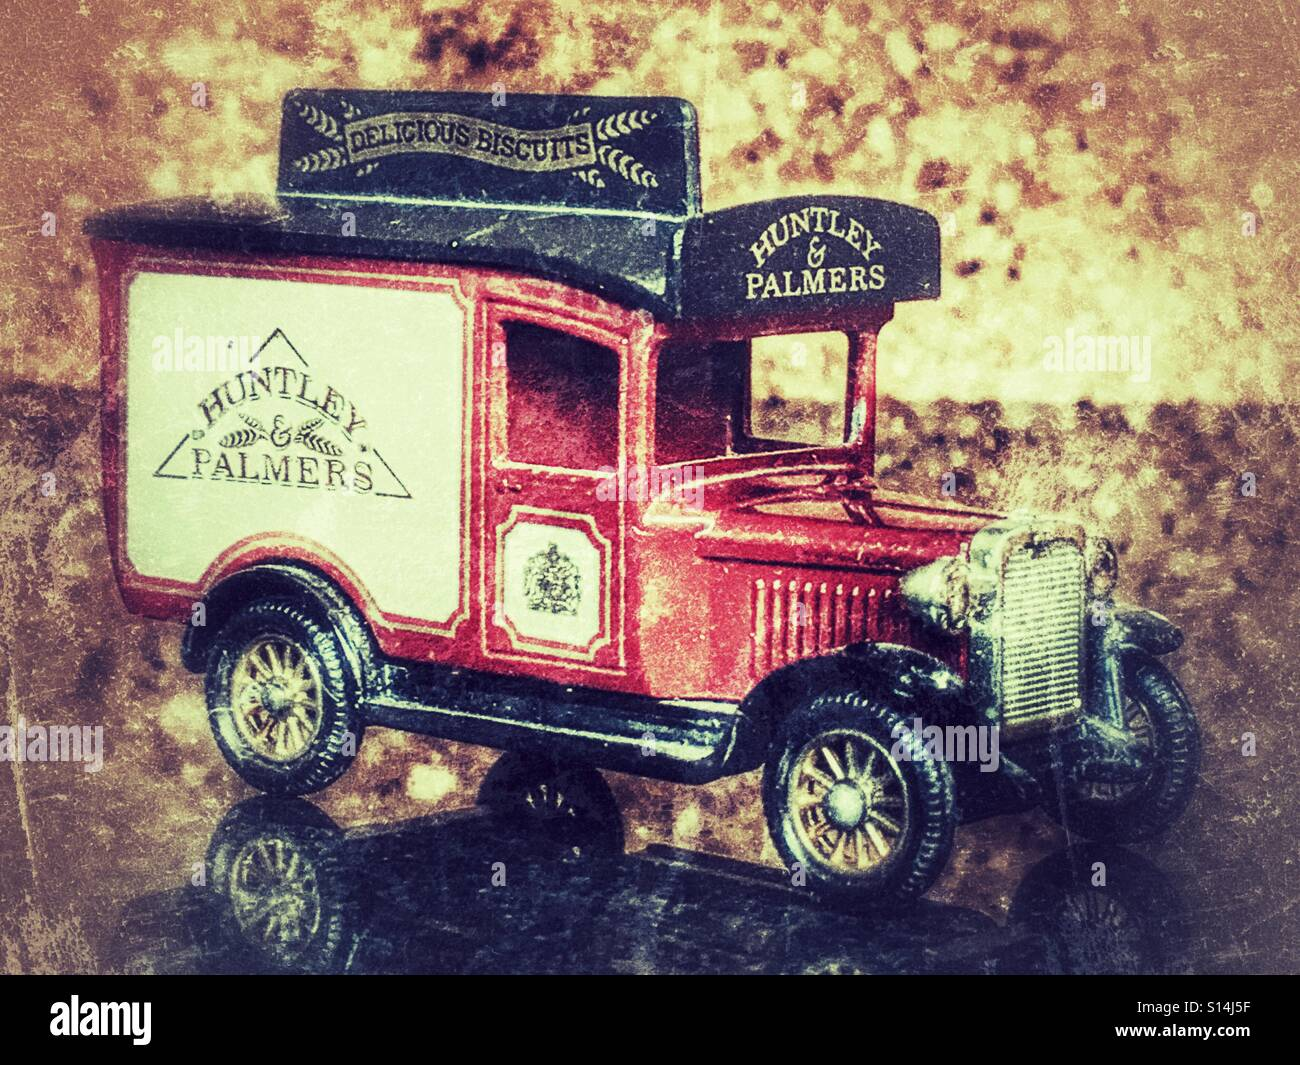 Diecast vehicle, Huntley & Palmers delivery truck Stock Photo